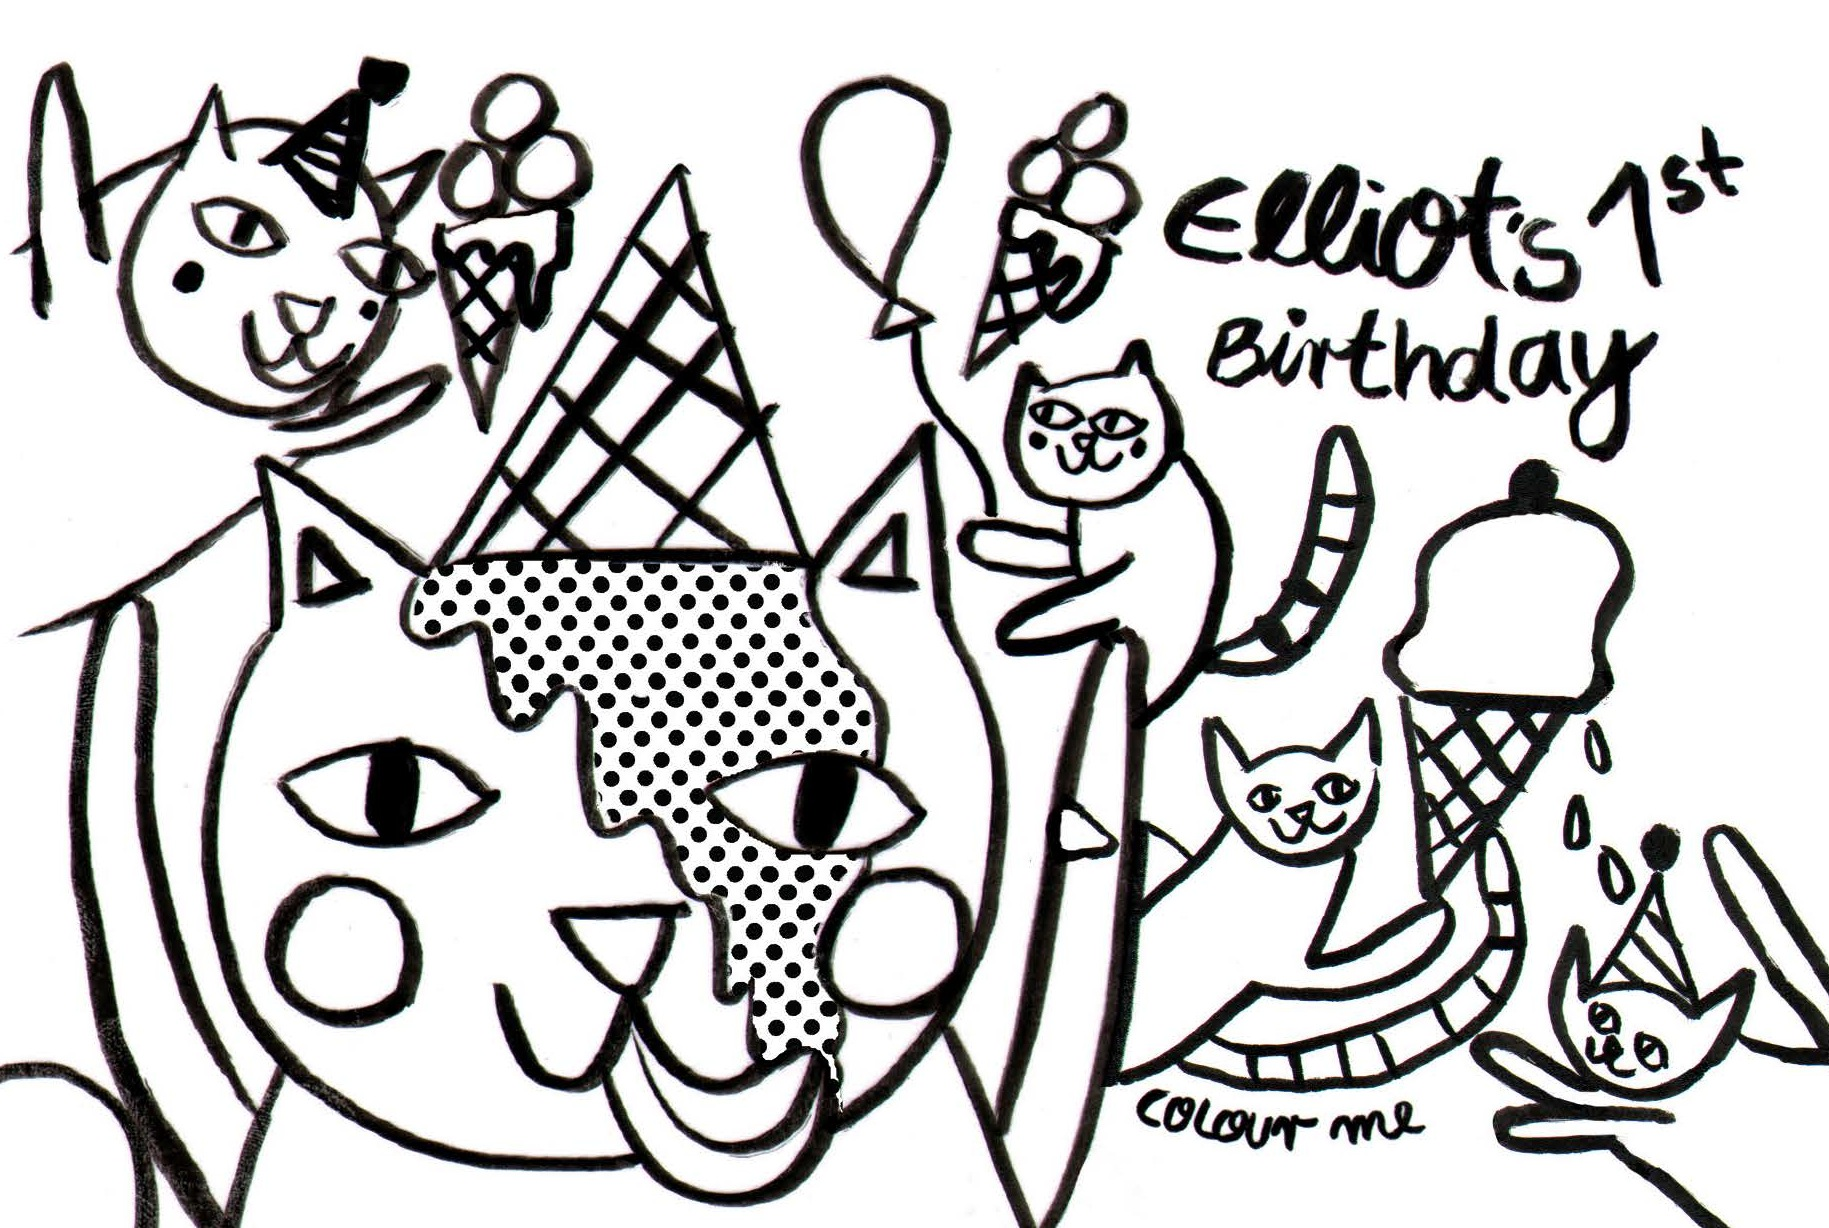 Elliot-bday-invite